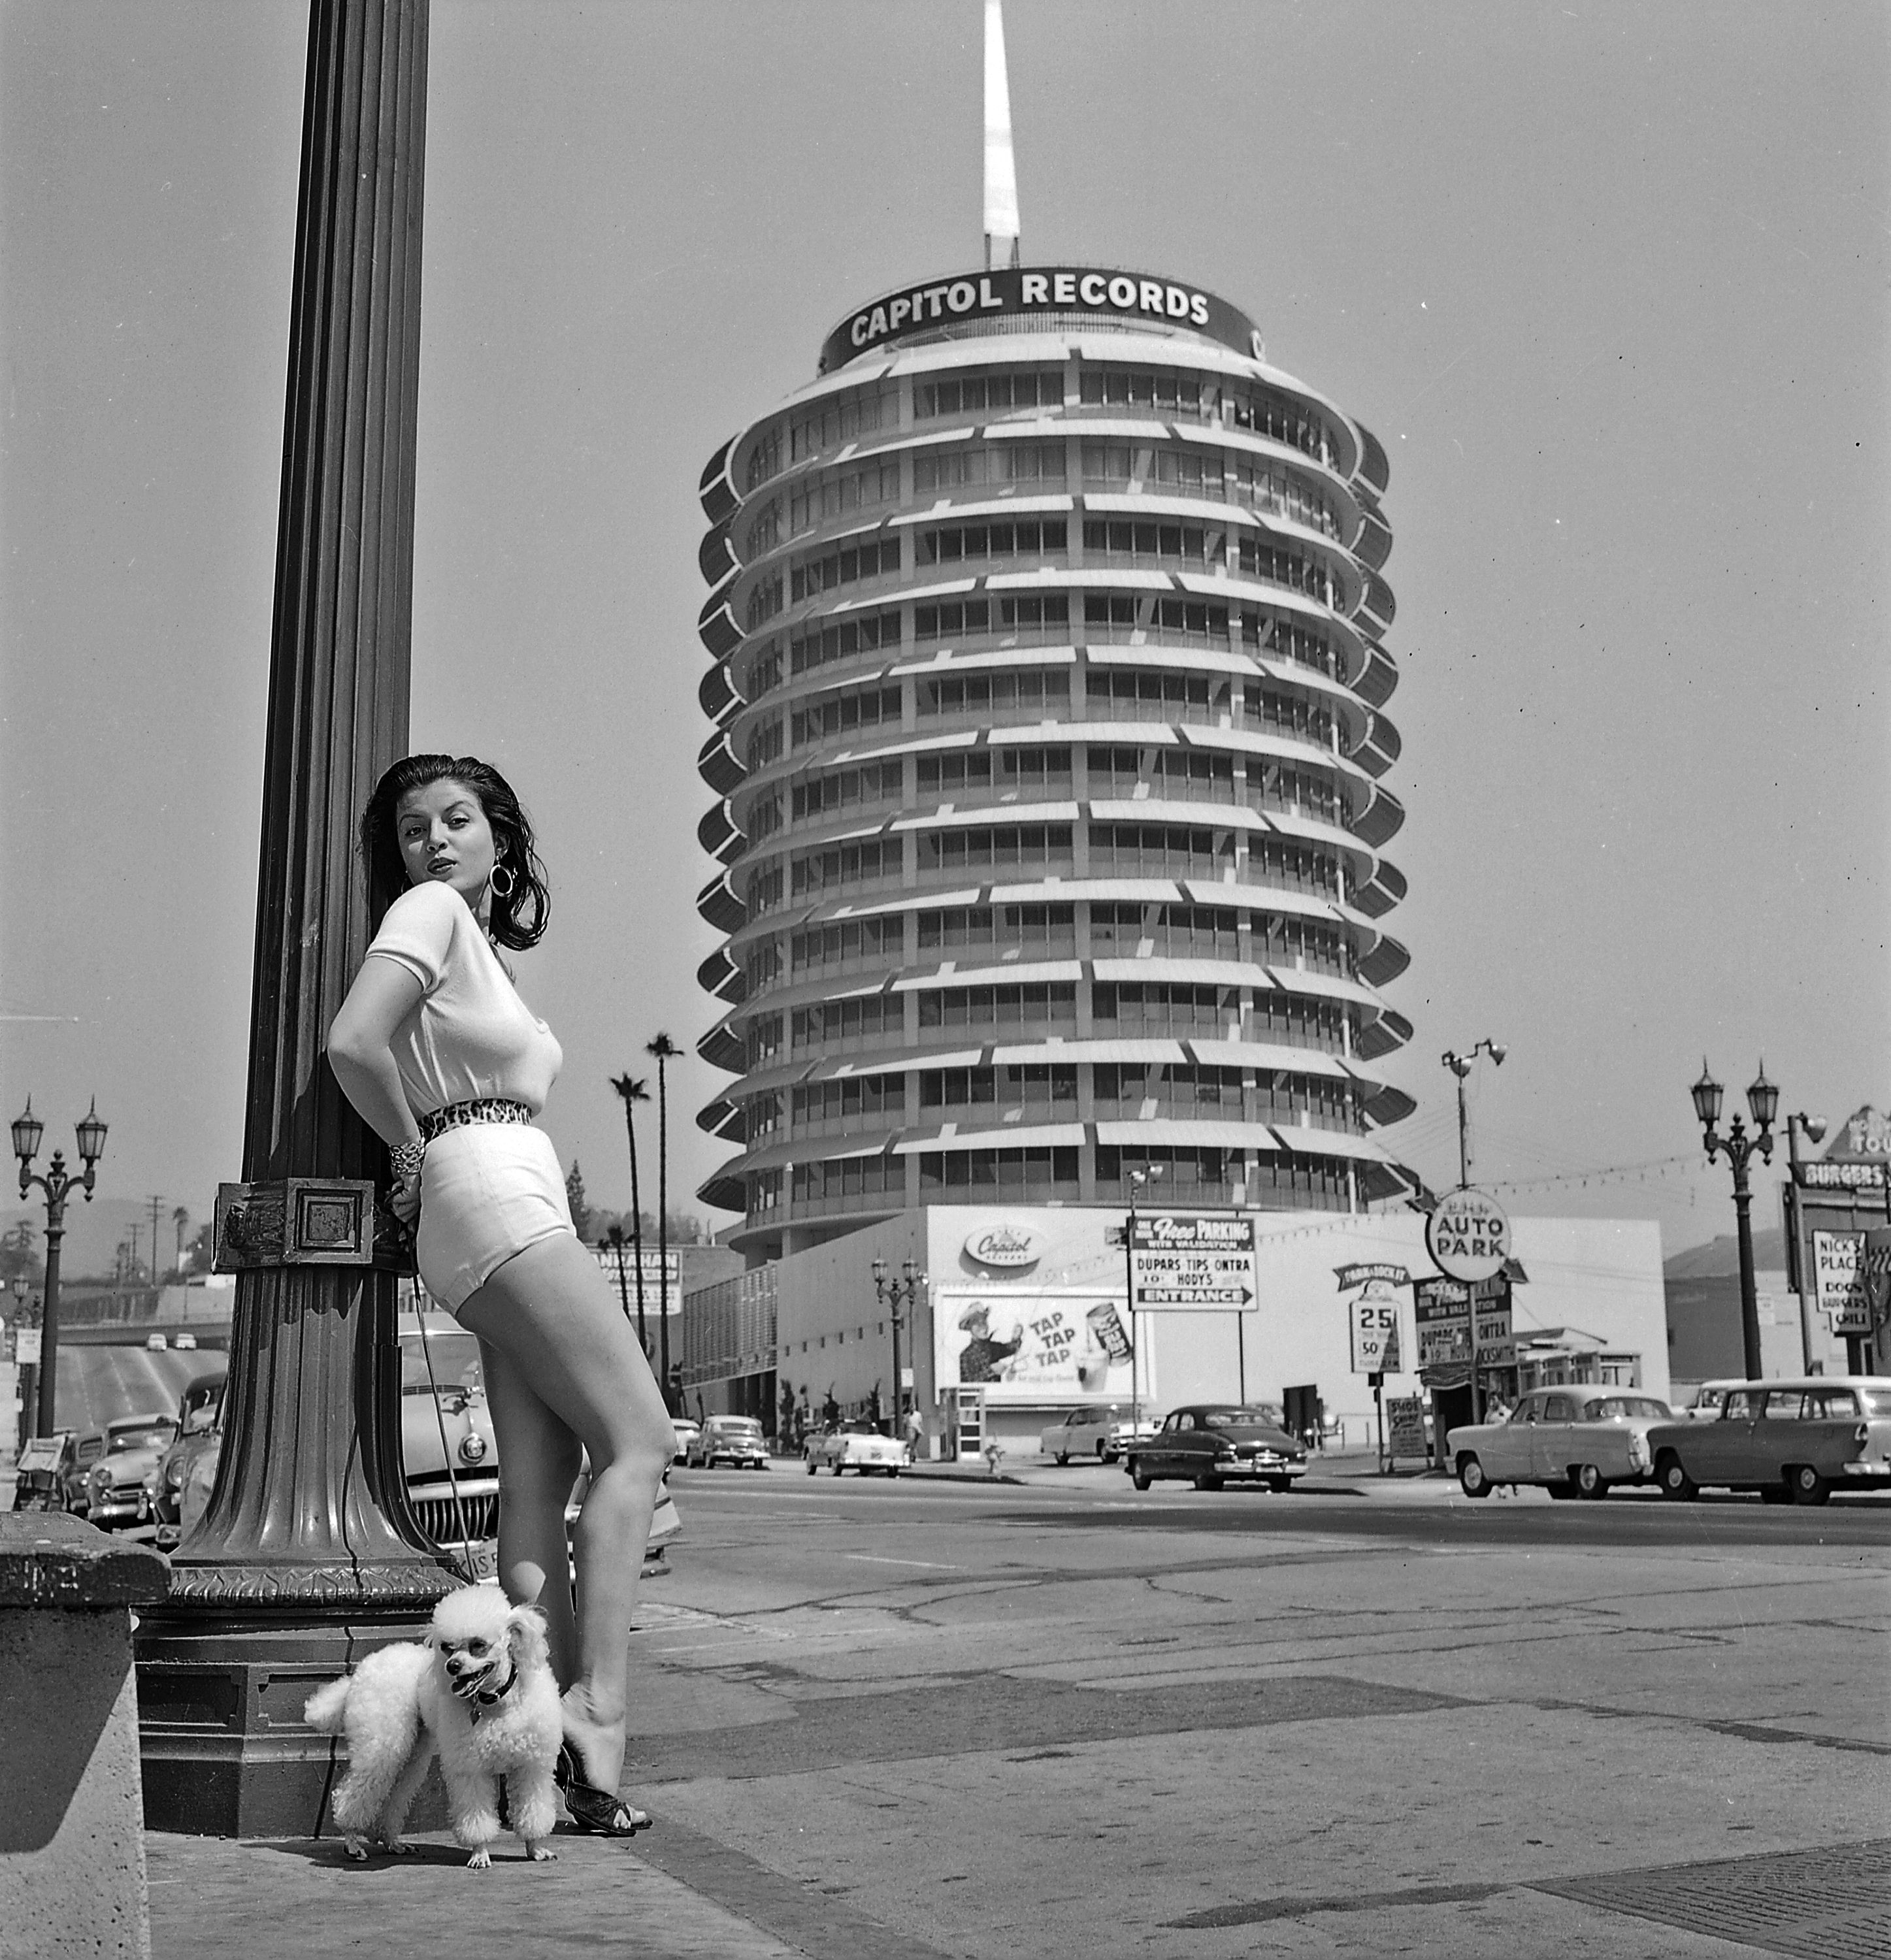 40 Photos That Show How Much LA Has Changed Over the Years